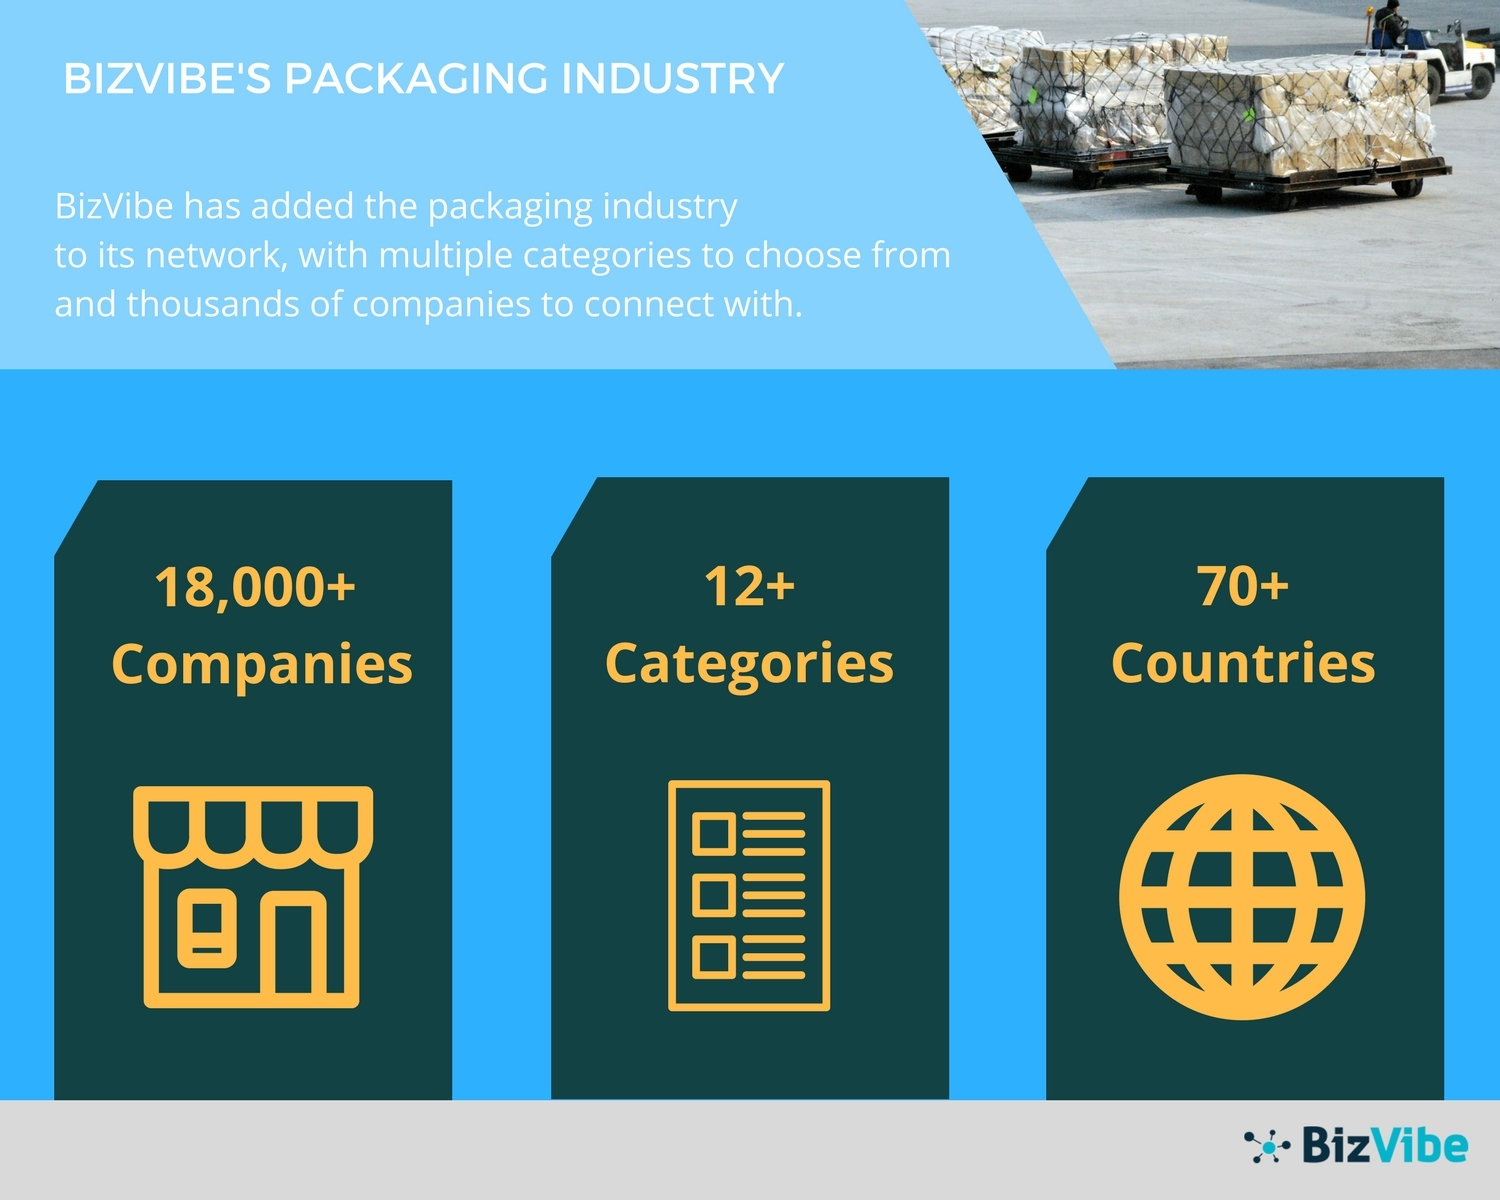 Sustainability is Becoming a Top Concern for the Packaging Industry - BizVibe (Graphic: Business Wire)